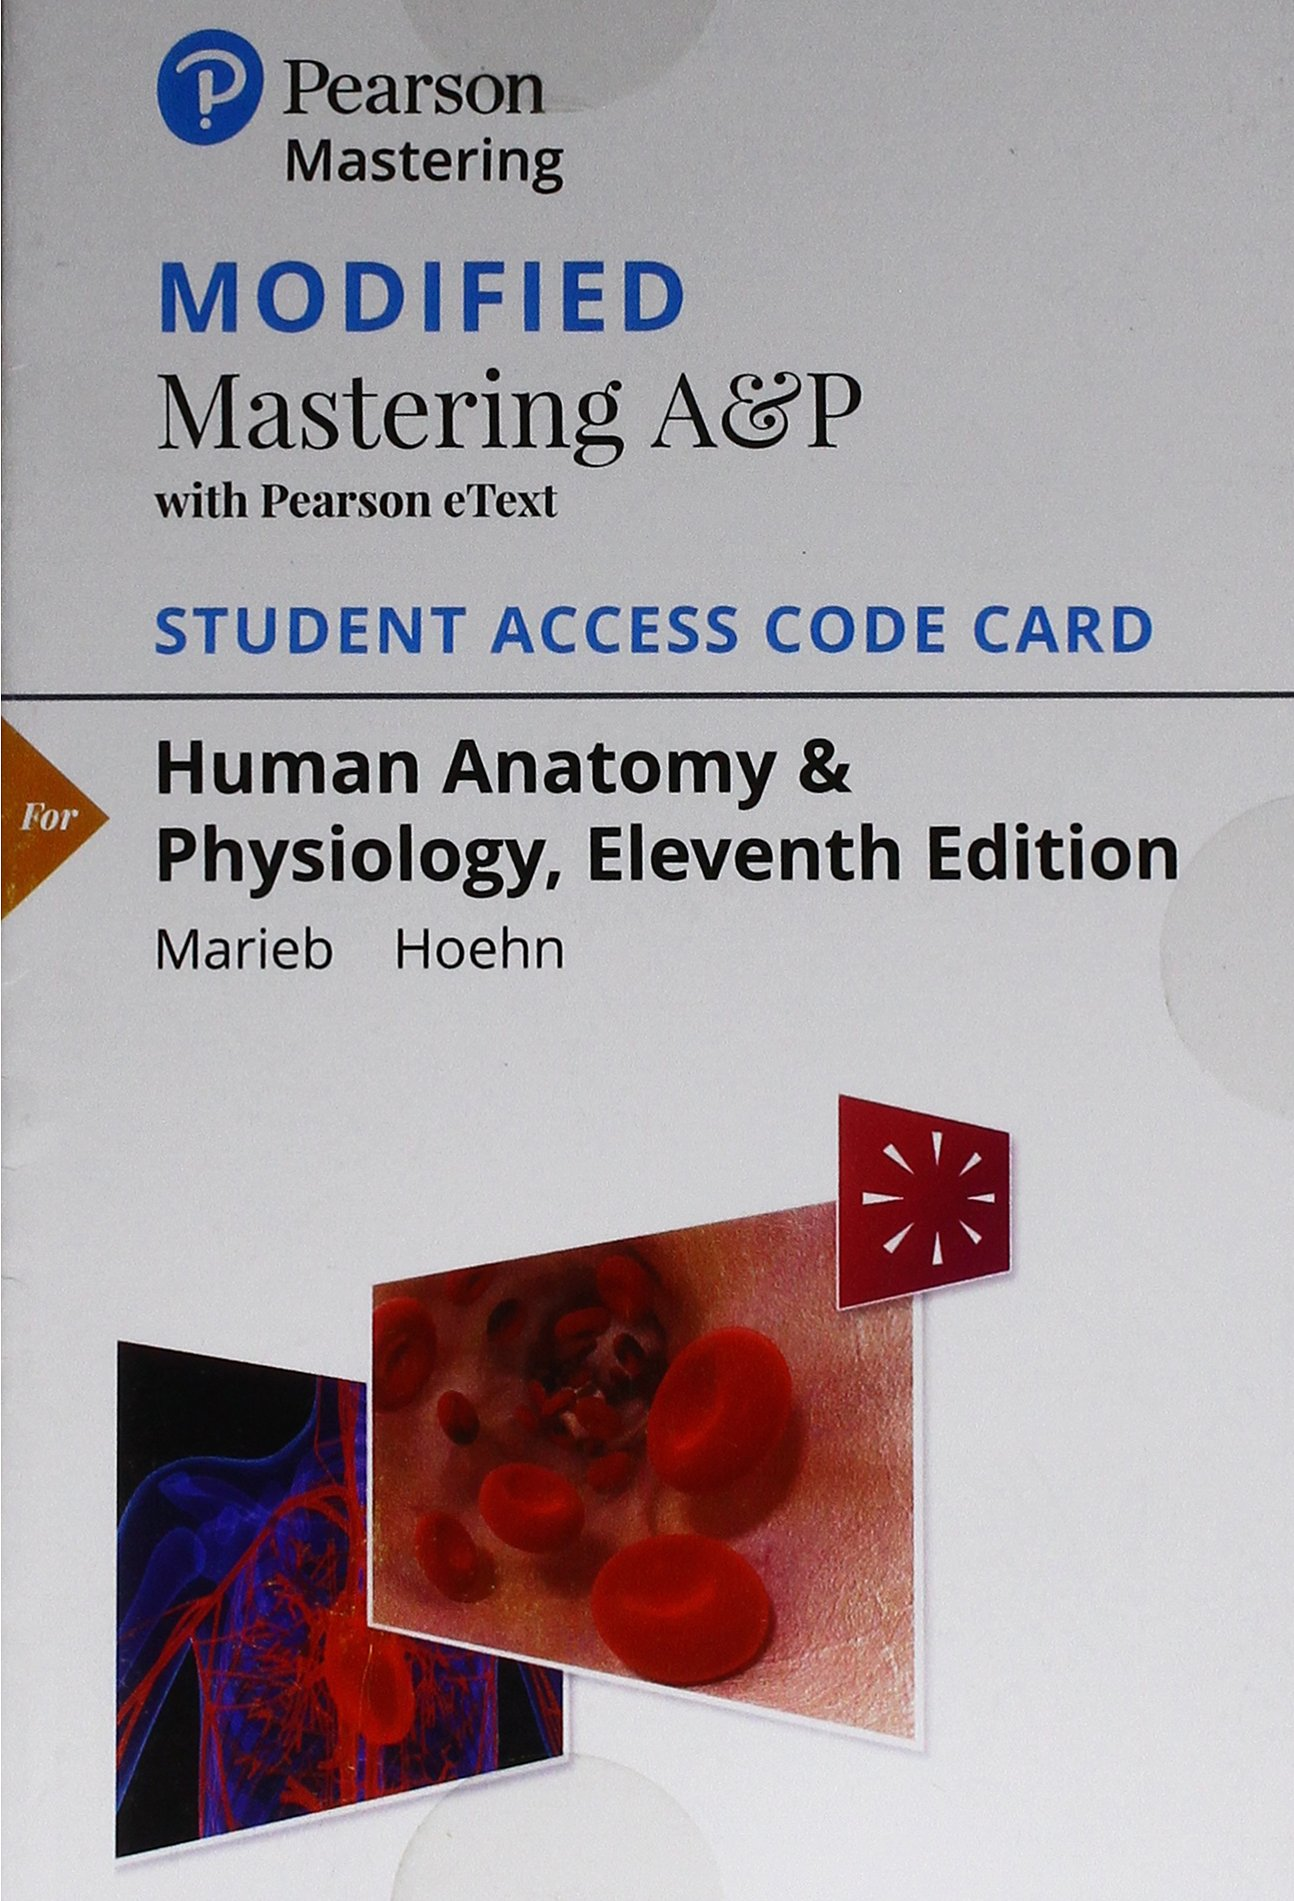 Human Anatomy & Physiology Modified Mastering A&P With Pearson Etext ...